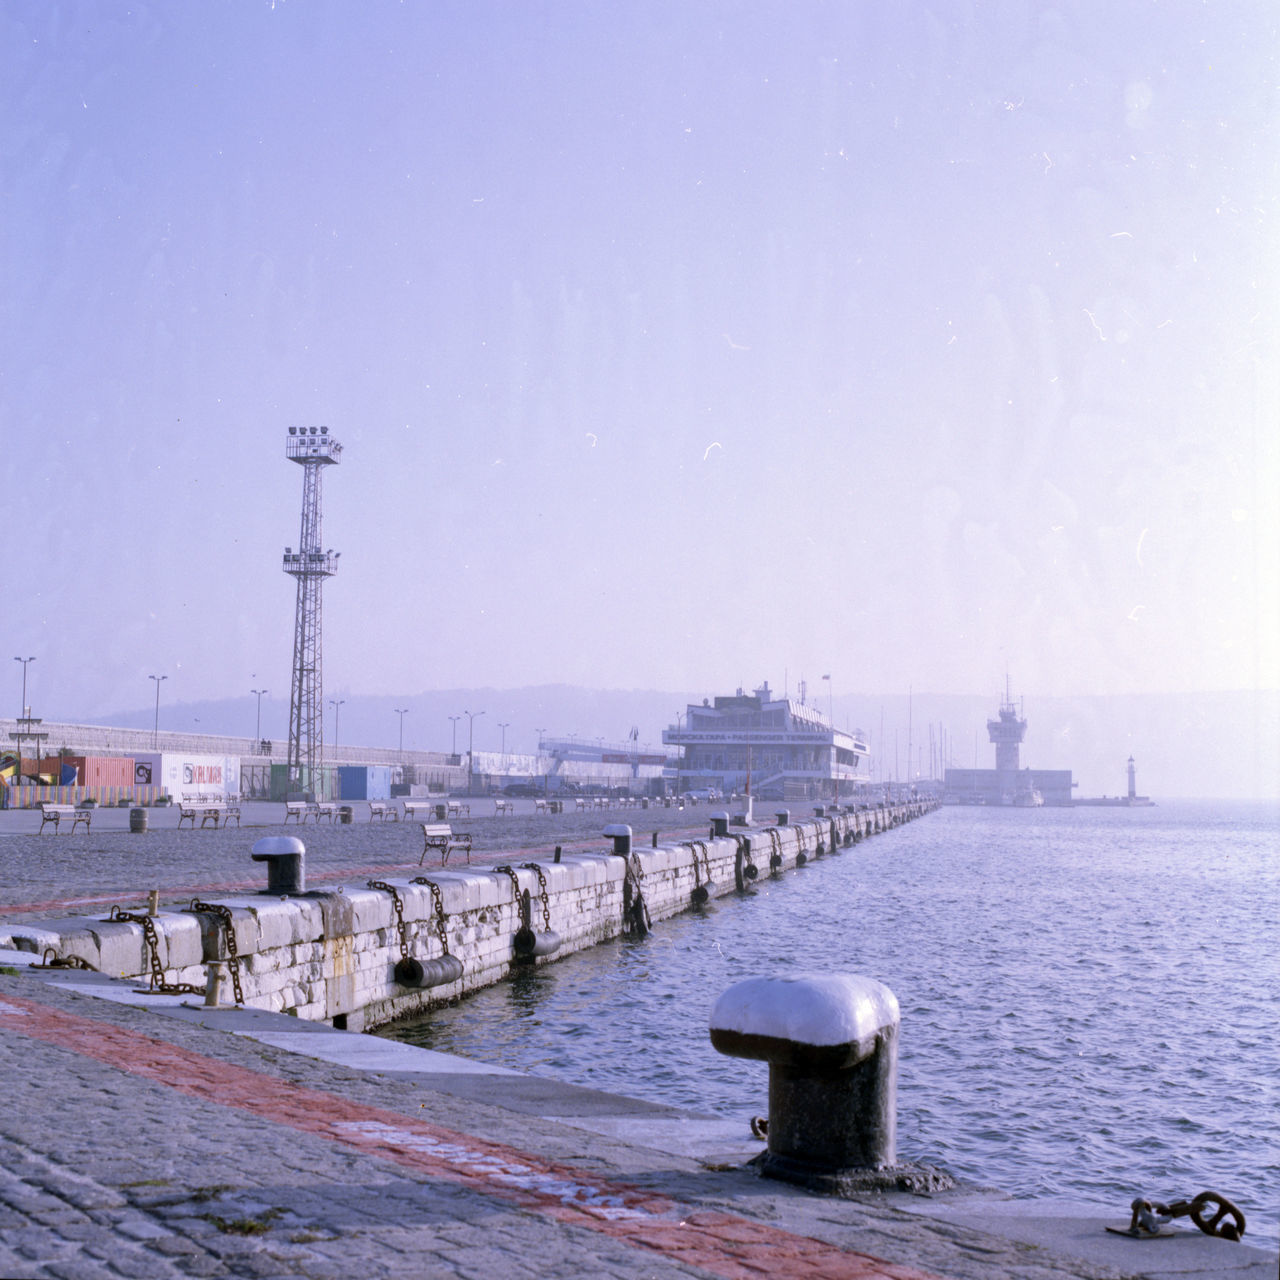 Foggy morning in Varna Bay Ana Backgrounds Blue Blue Sky Film Focus On Foreground Foggy Harbor Monochrome Morning Portrait Sea Seaside Ship Vintage Water